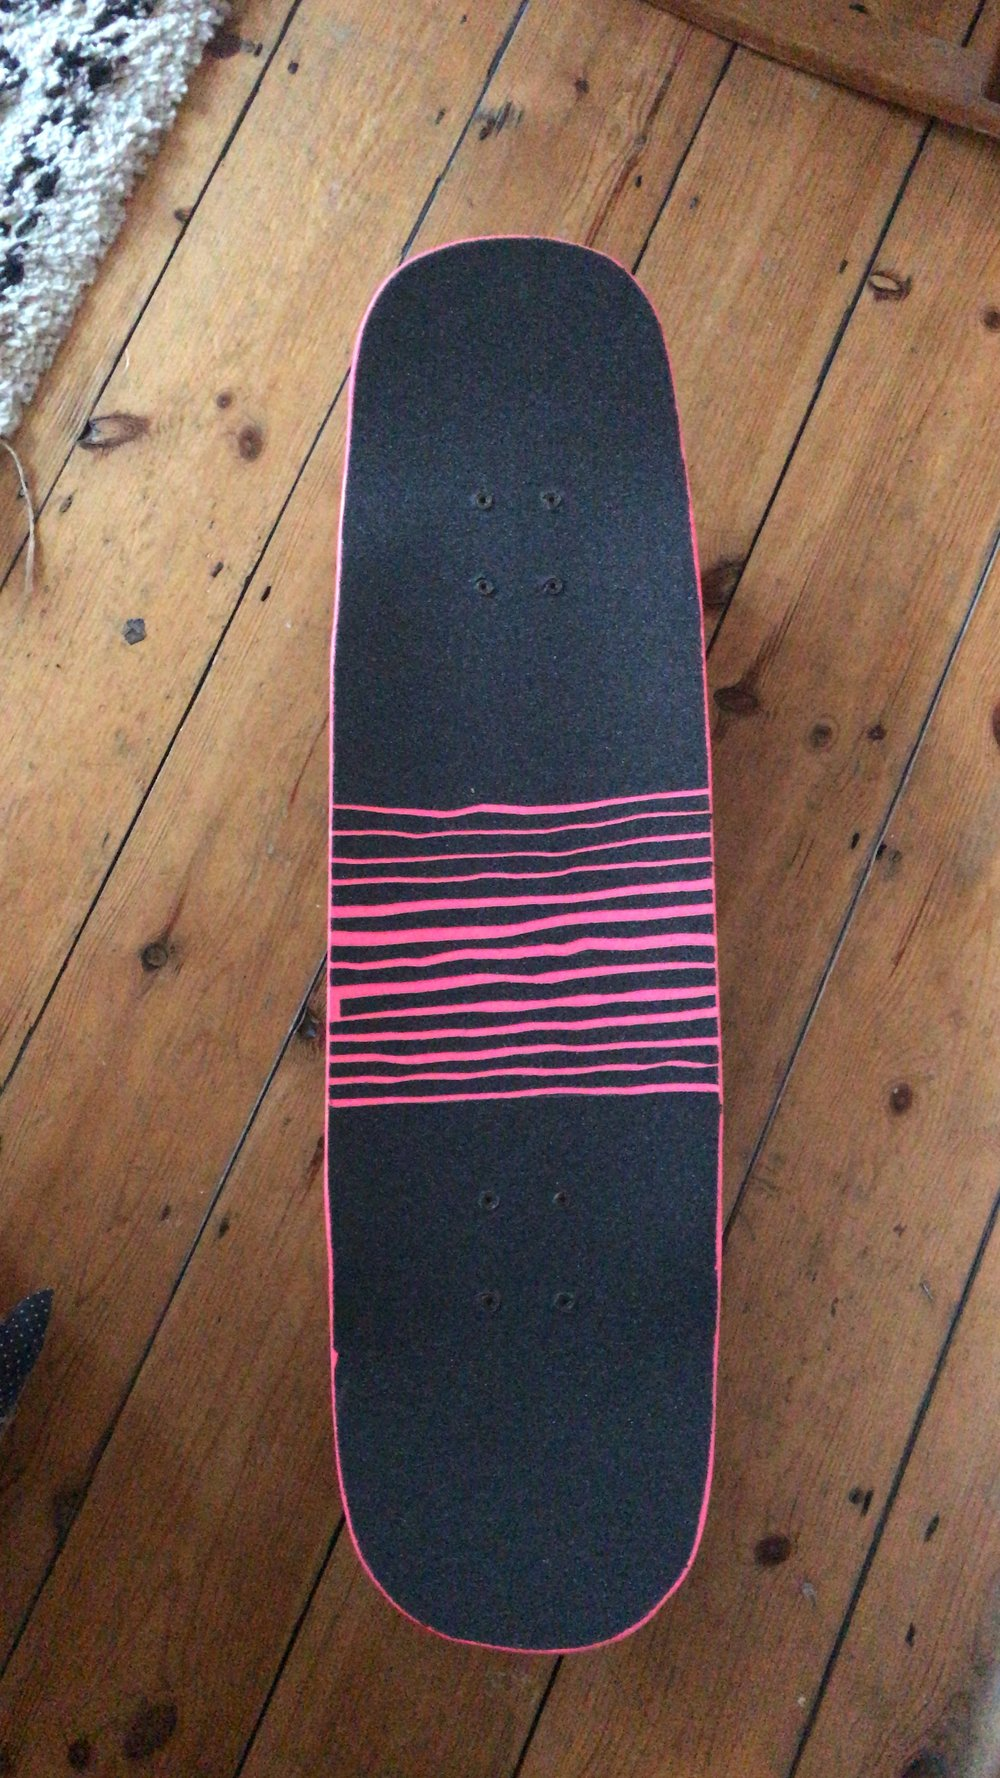 Added the custom grip tape job.